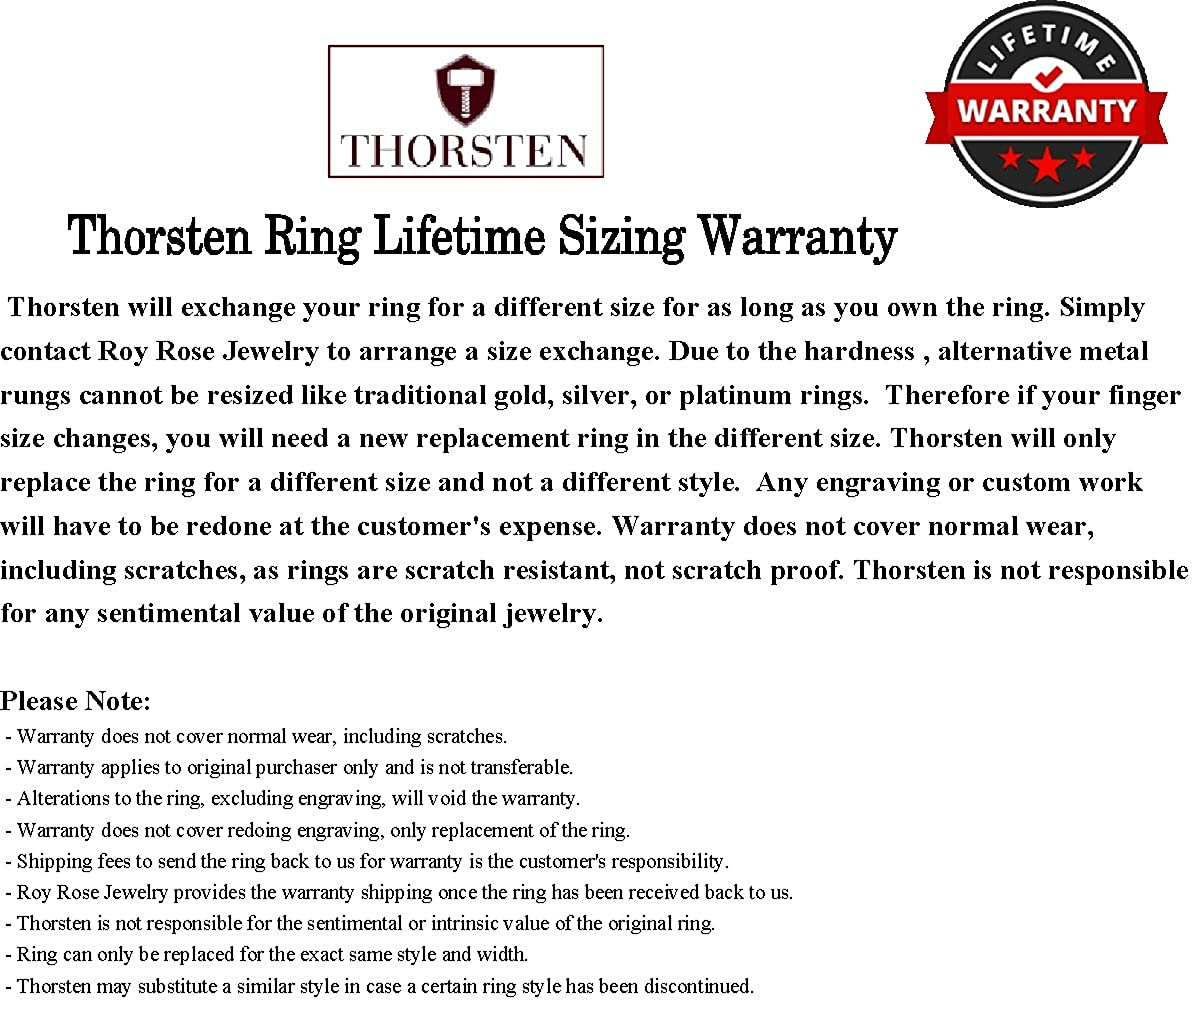 Thorsten Multiple Fishing Hook Pattern Ring Flat Tungsten Ring 6mm Wide Wedding Band from Roy Rose Jewelry